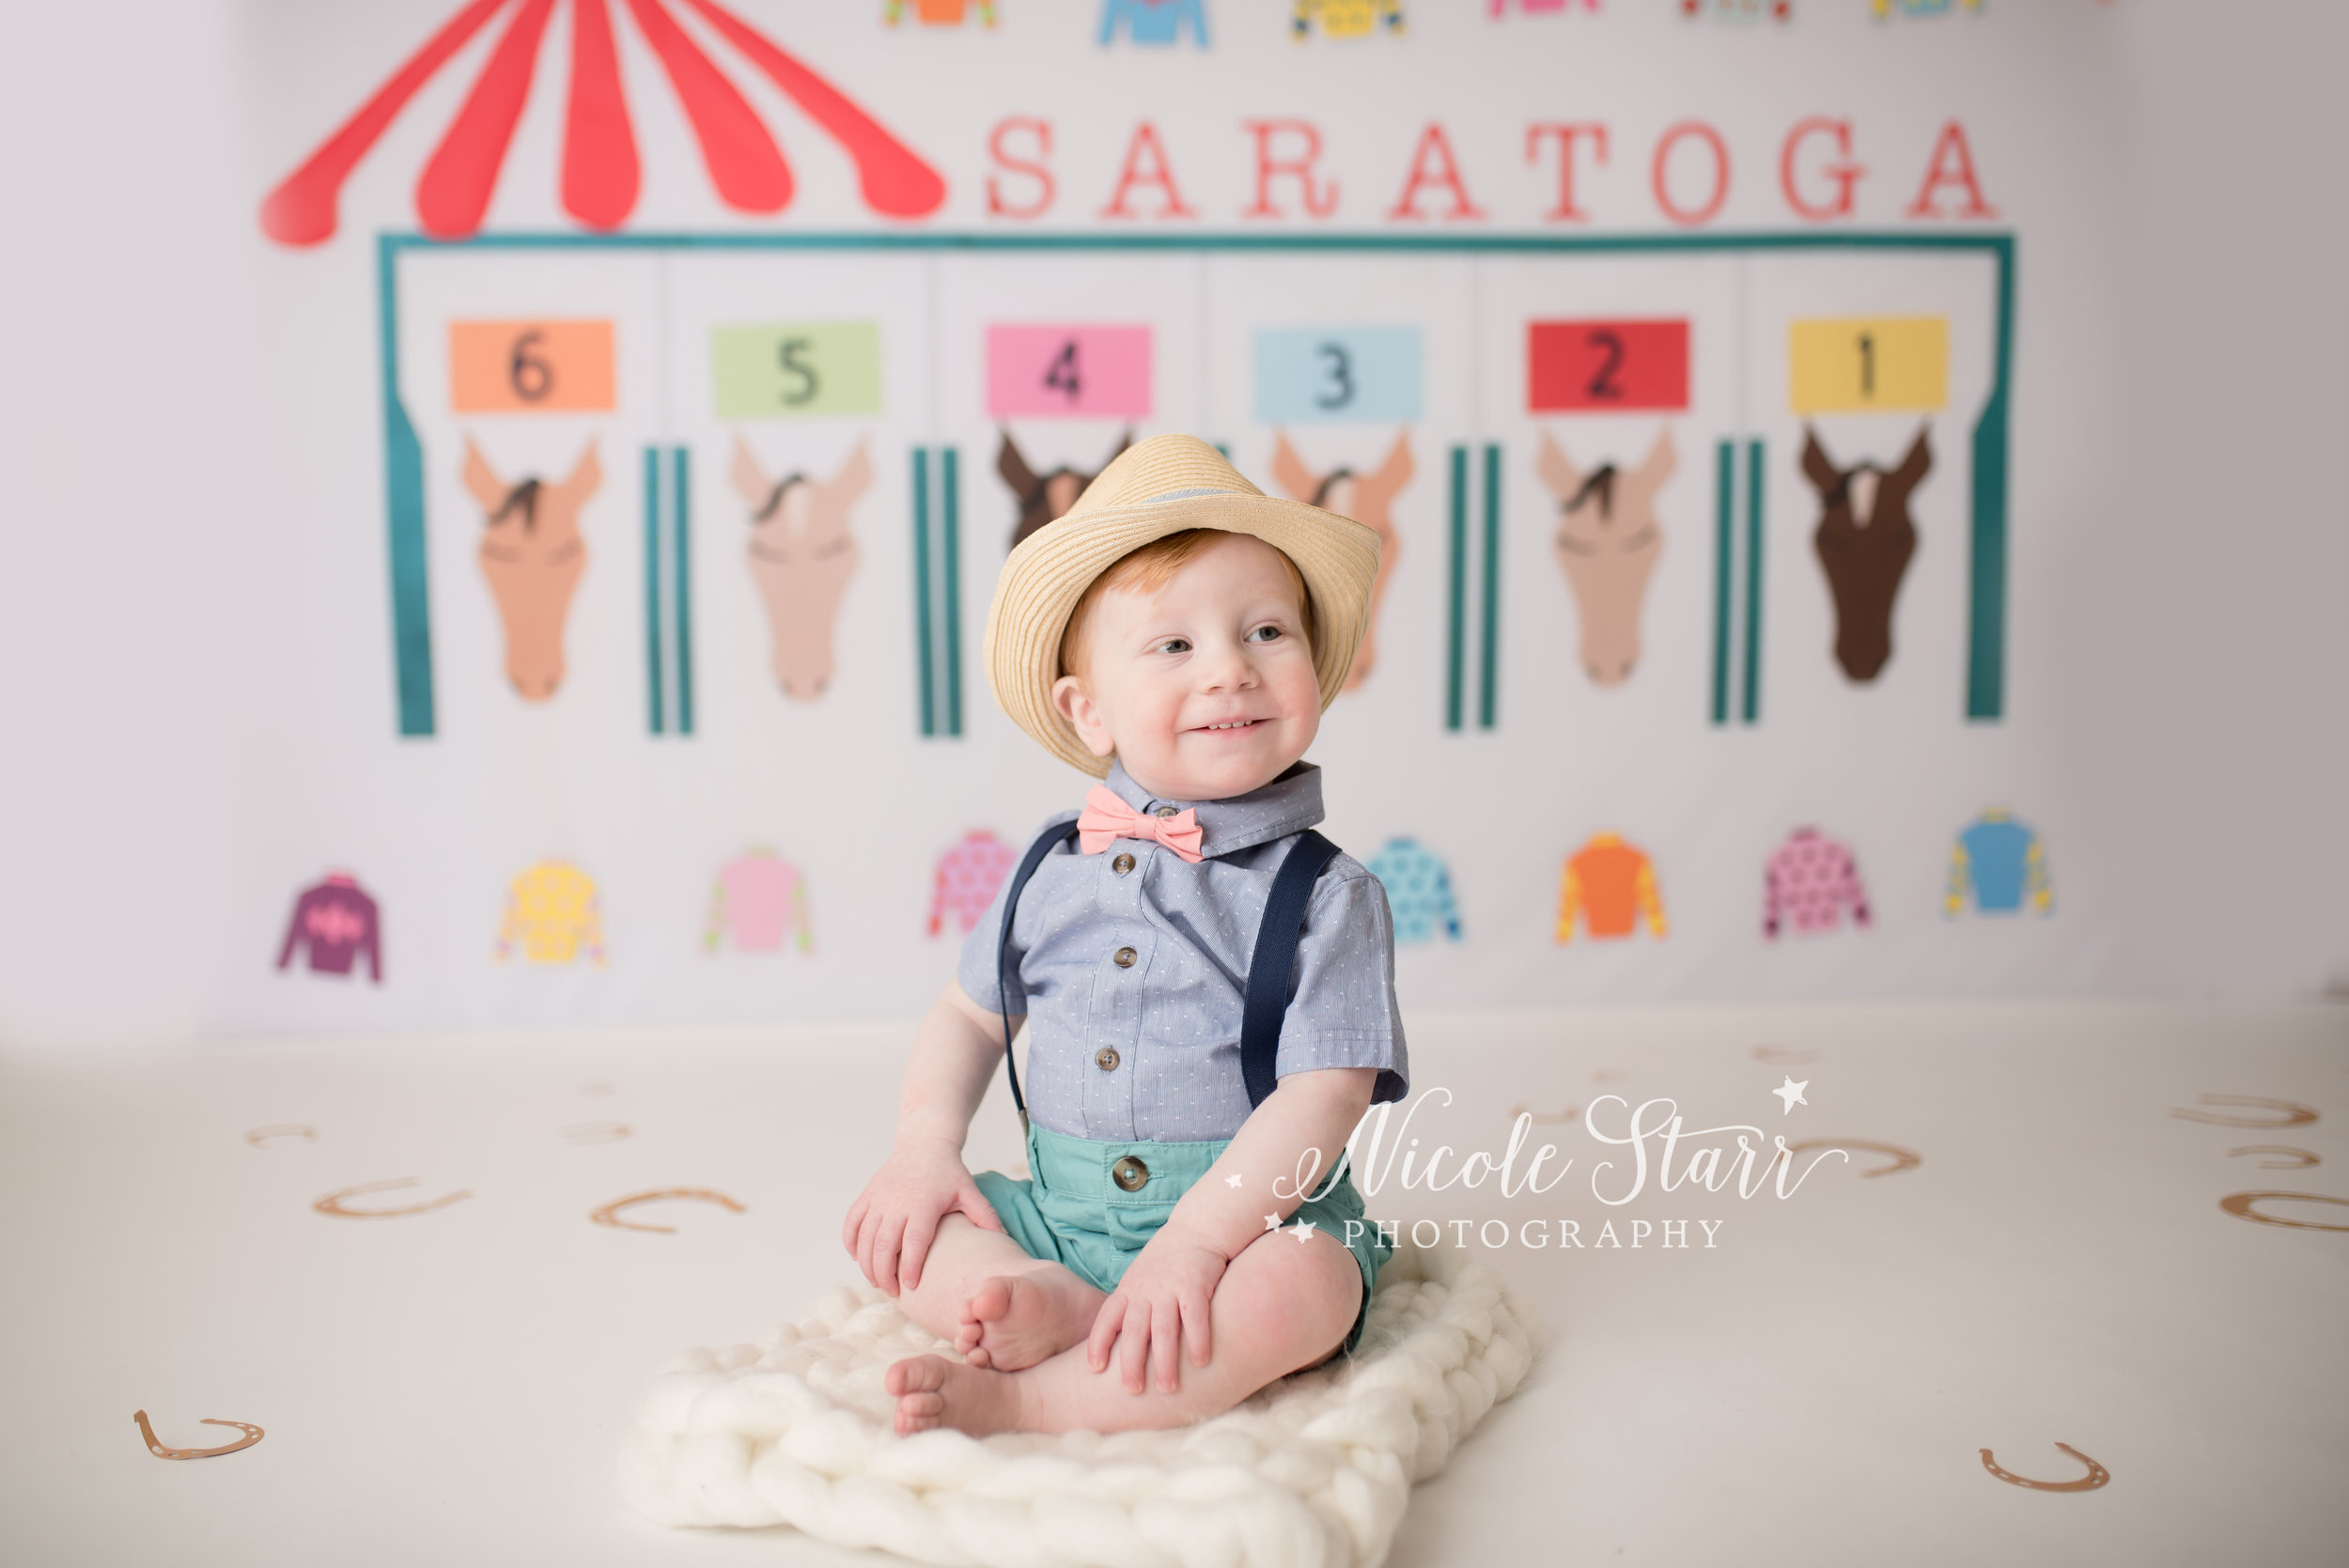 Nicole Starr Photography | albany cake smash photographer, horse race backdrop, saratoga springs baby photographer, saratoga springs cake smash photographer, saratoga springs family photographer, saratoga springs race track photo shoot, travers weekend photographer, saratoga springs photographer, saratoga springs new york